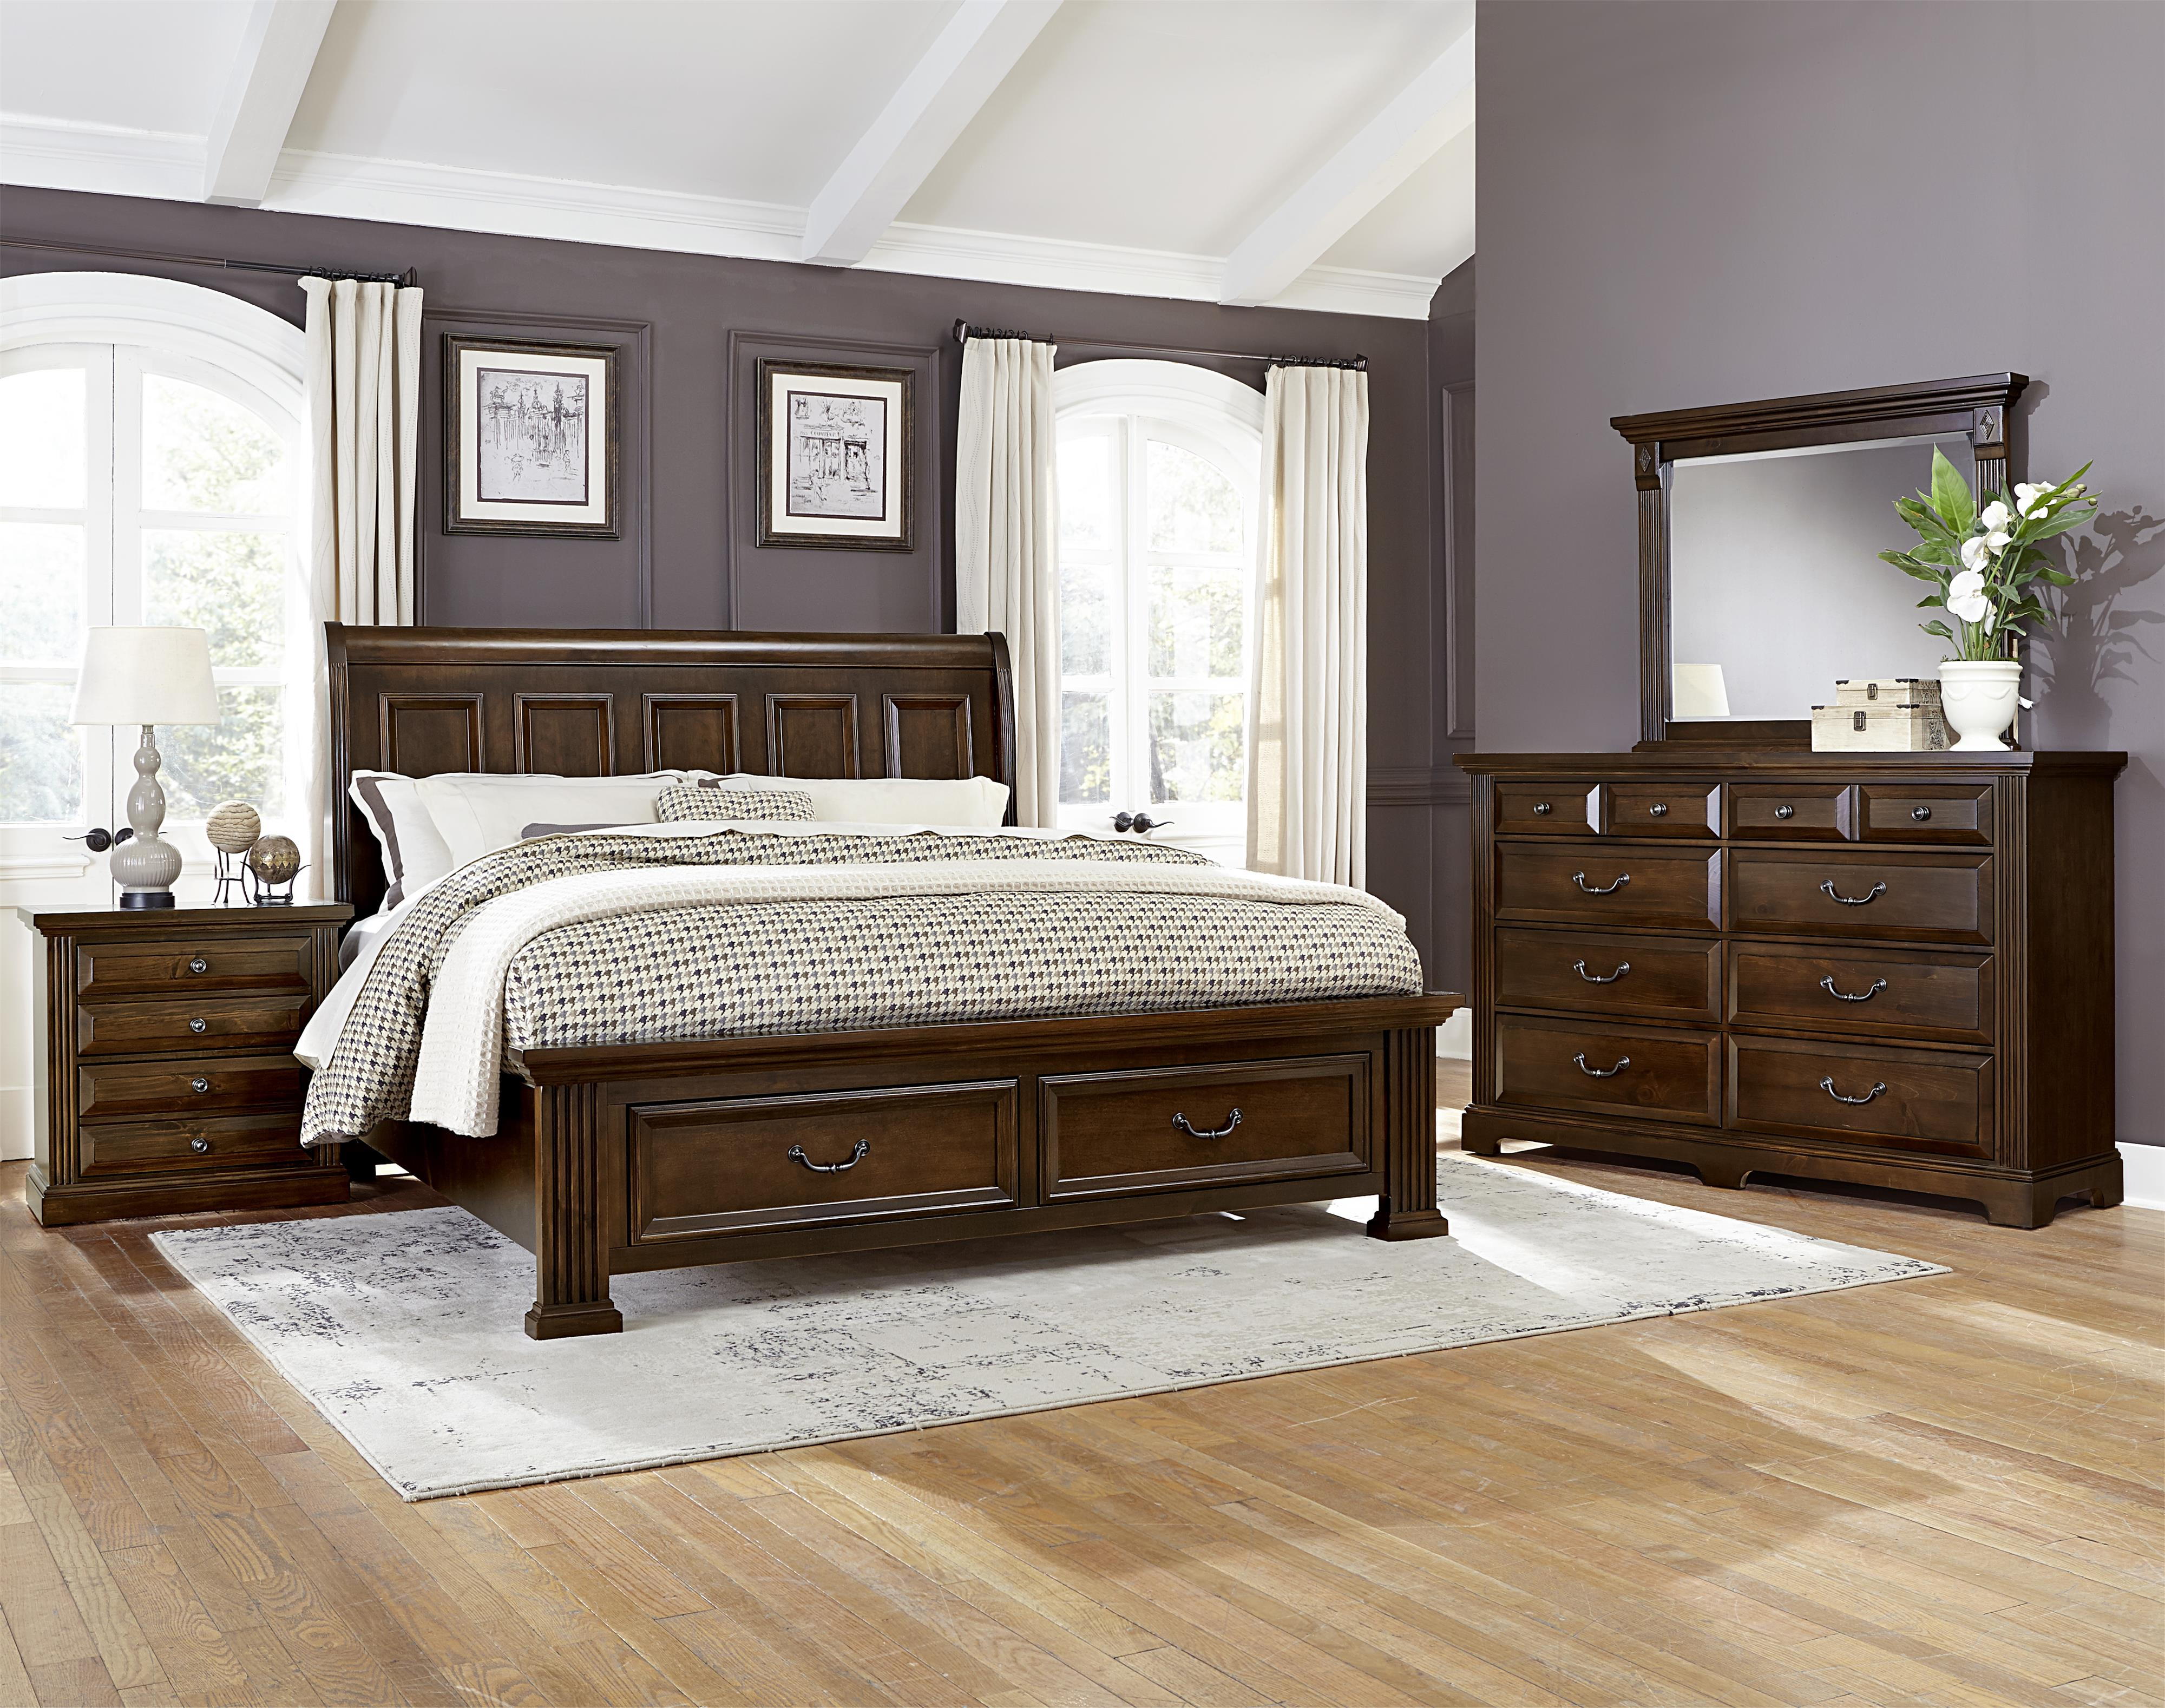 vaughan bassett woodlands king bedroom group olinde s 17708 | products 2fvaughan bassett 2fcolor 2fwoodlands 25422930 bb98 q bedroom group 3 b0